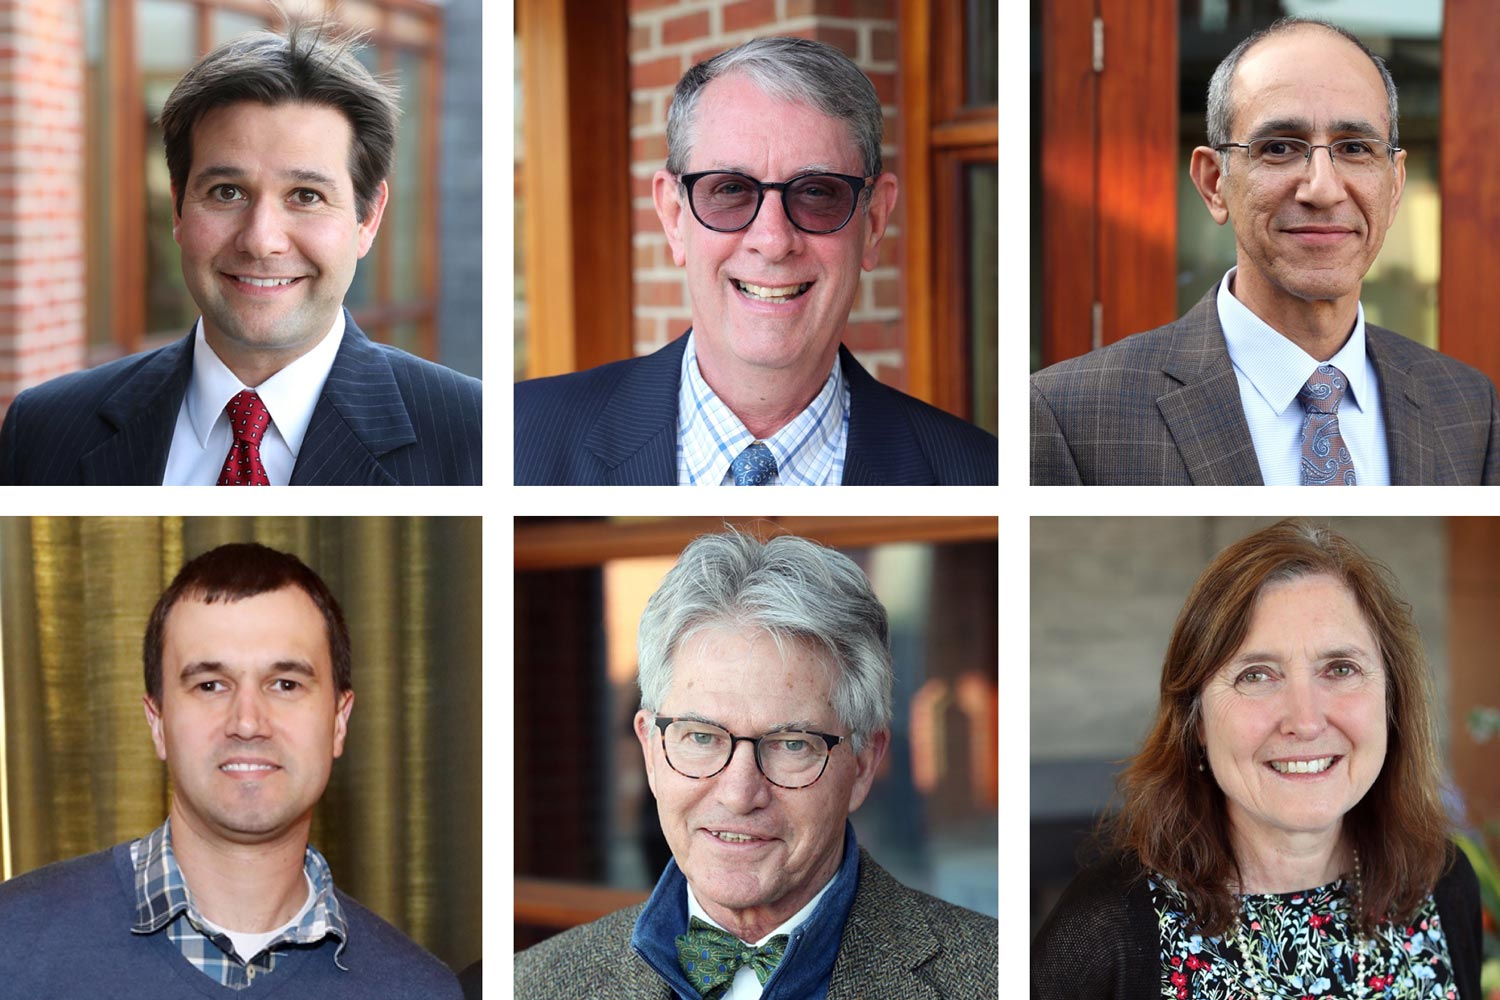 The Jefferson Scholars Foundation honored faculty members, from left (top row) Gavin Garner, David Gies and Kambiz Kalantari; (bottom row) Gary Koenig, George Overstreet and Lisa Reilly. (Jefferson Scholars Foundation photos)